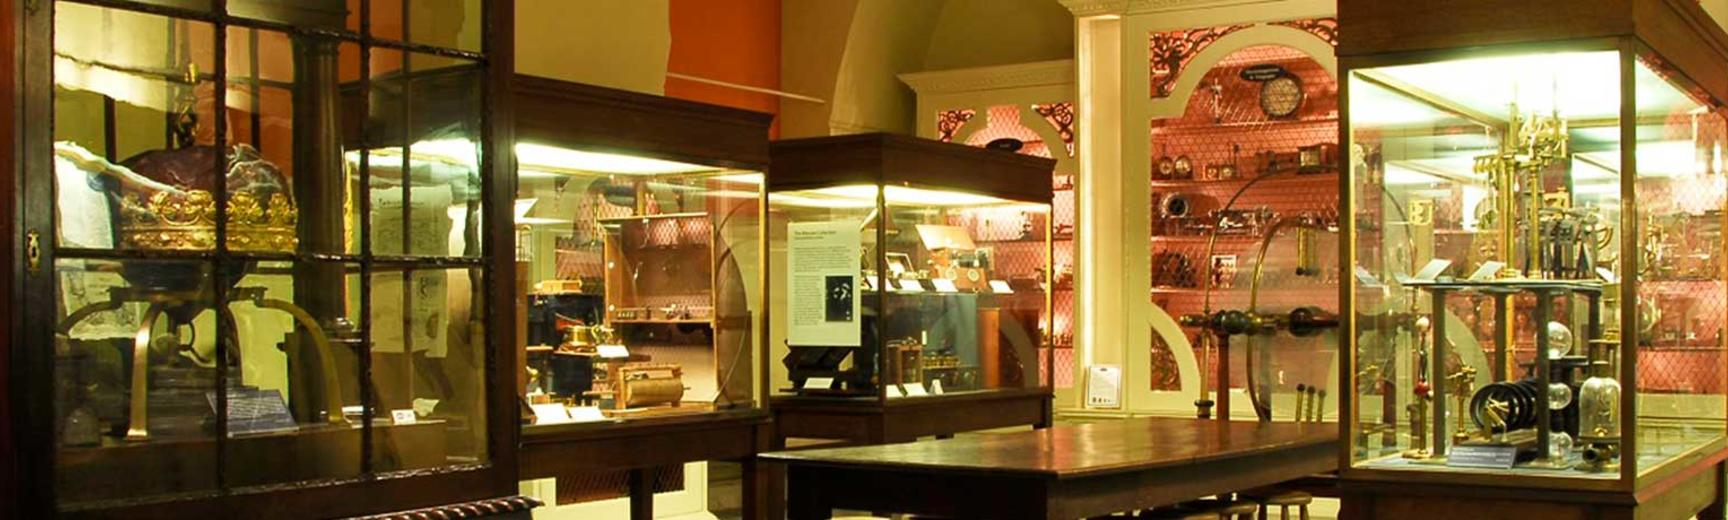 View of display cases at the Museum of the History of Science